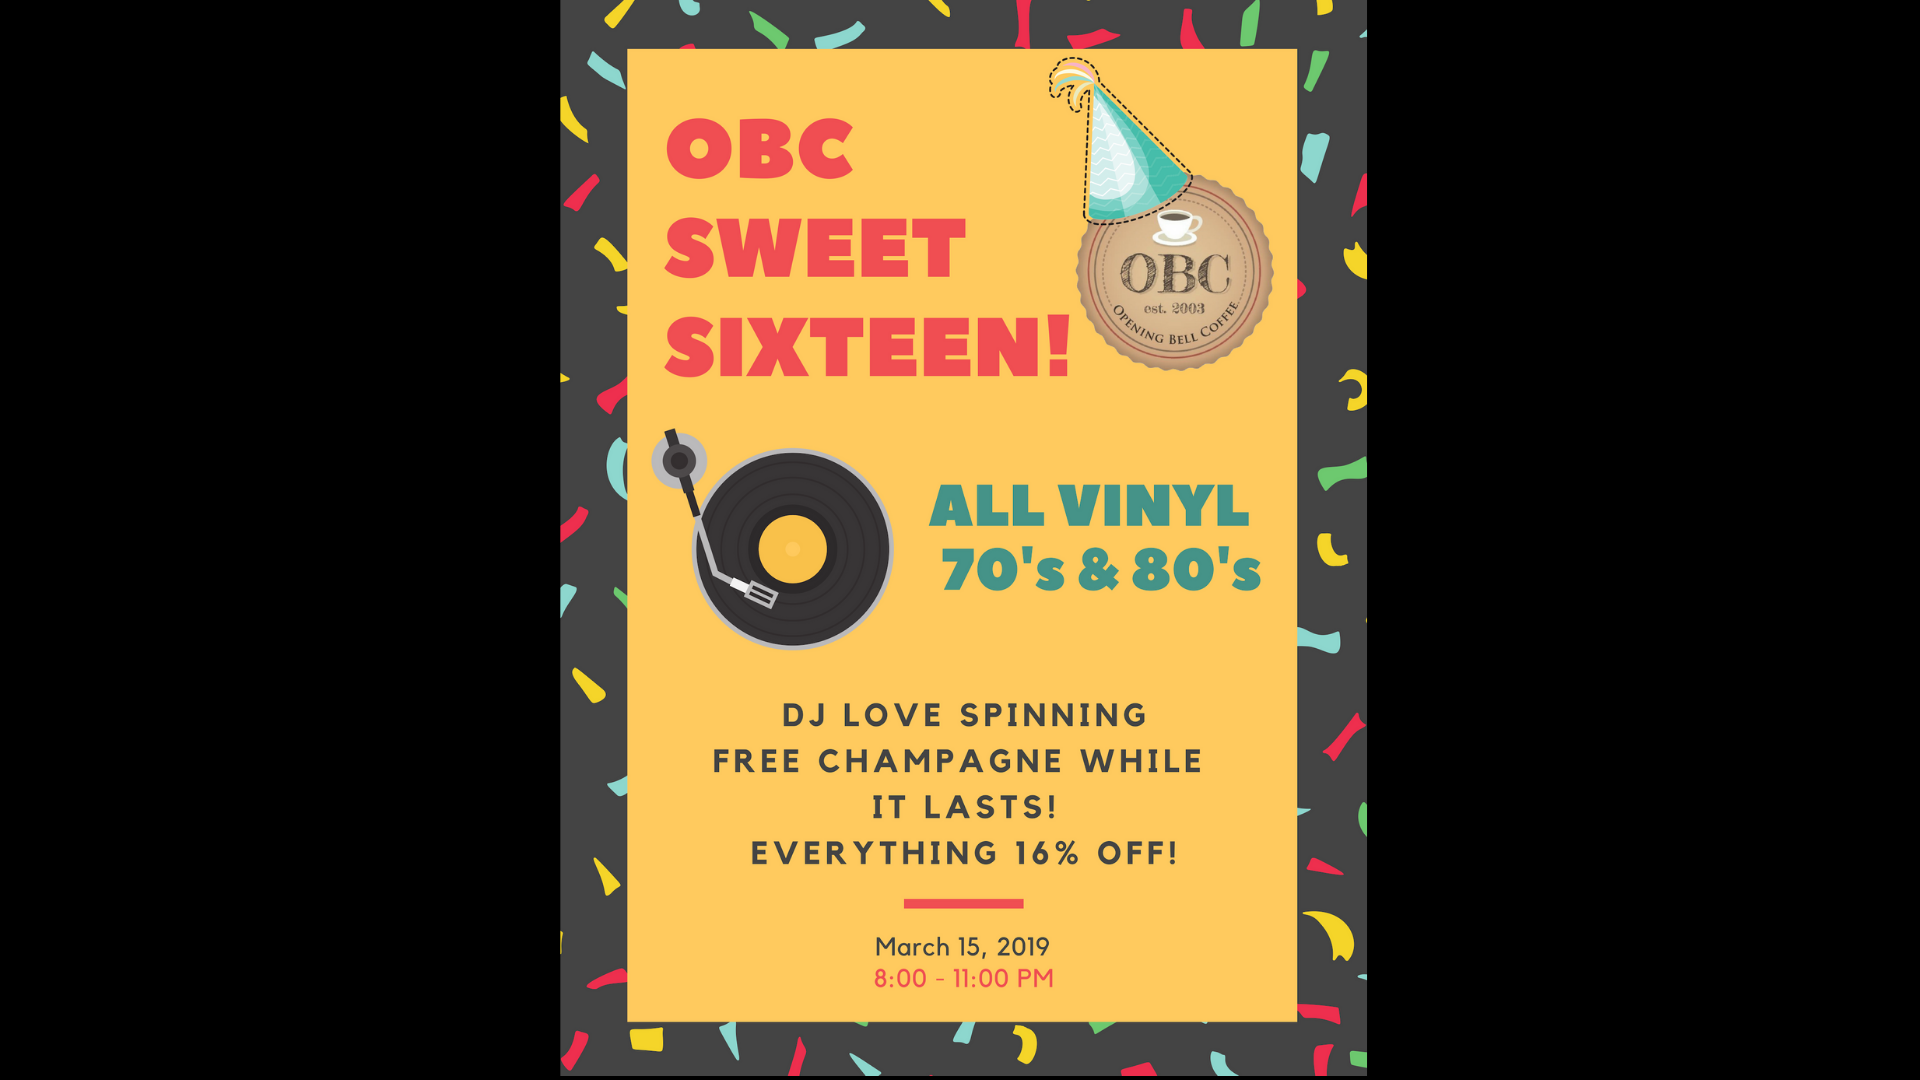 OBC Sweet 16 Birthday Party! 8-11 pm